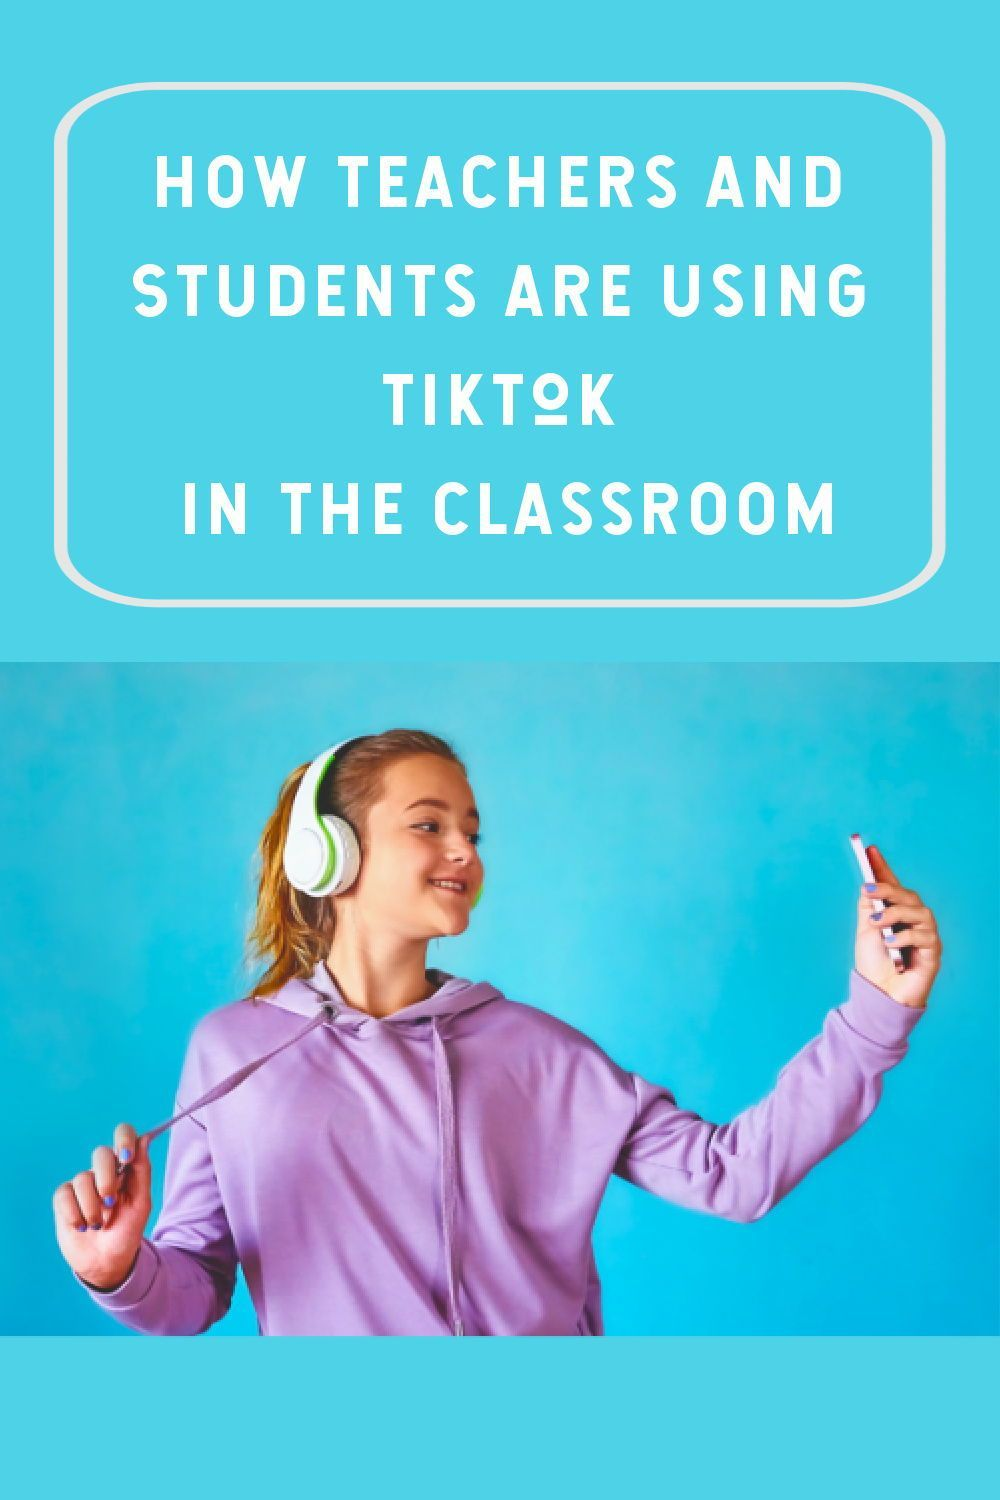 How Teachers And Students Are Using Tiktok In The Classroom Learning Liftoff Classroom Learning Media Education Classroom